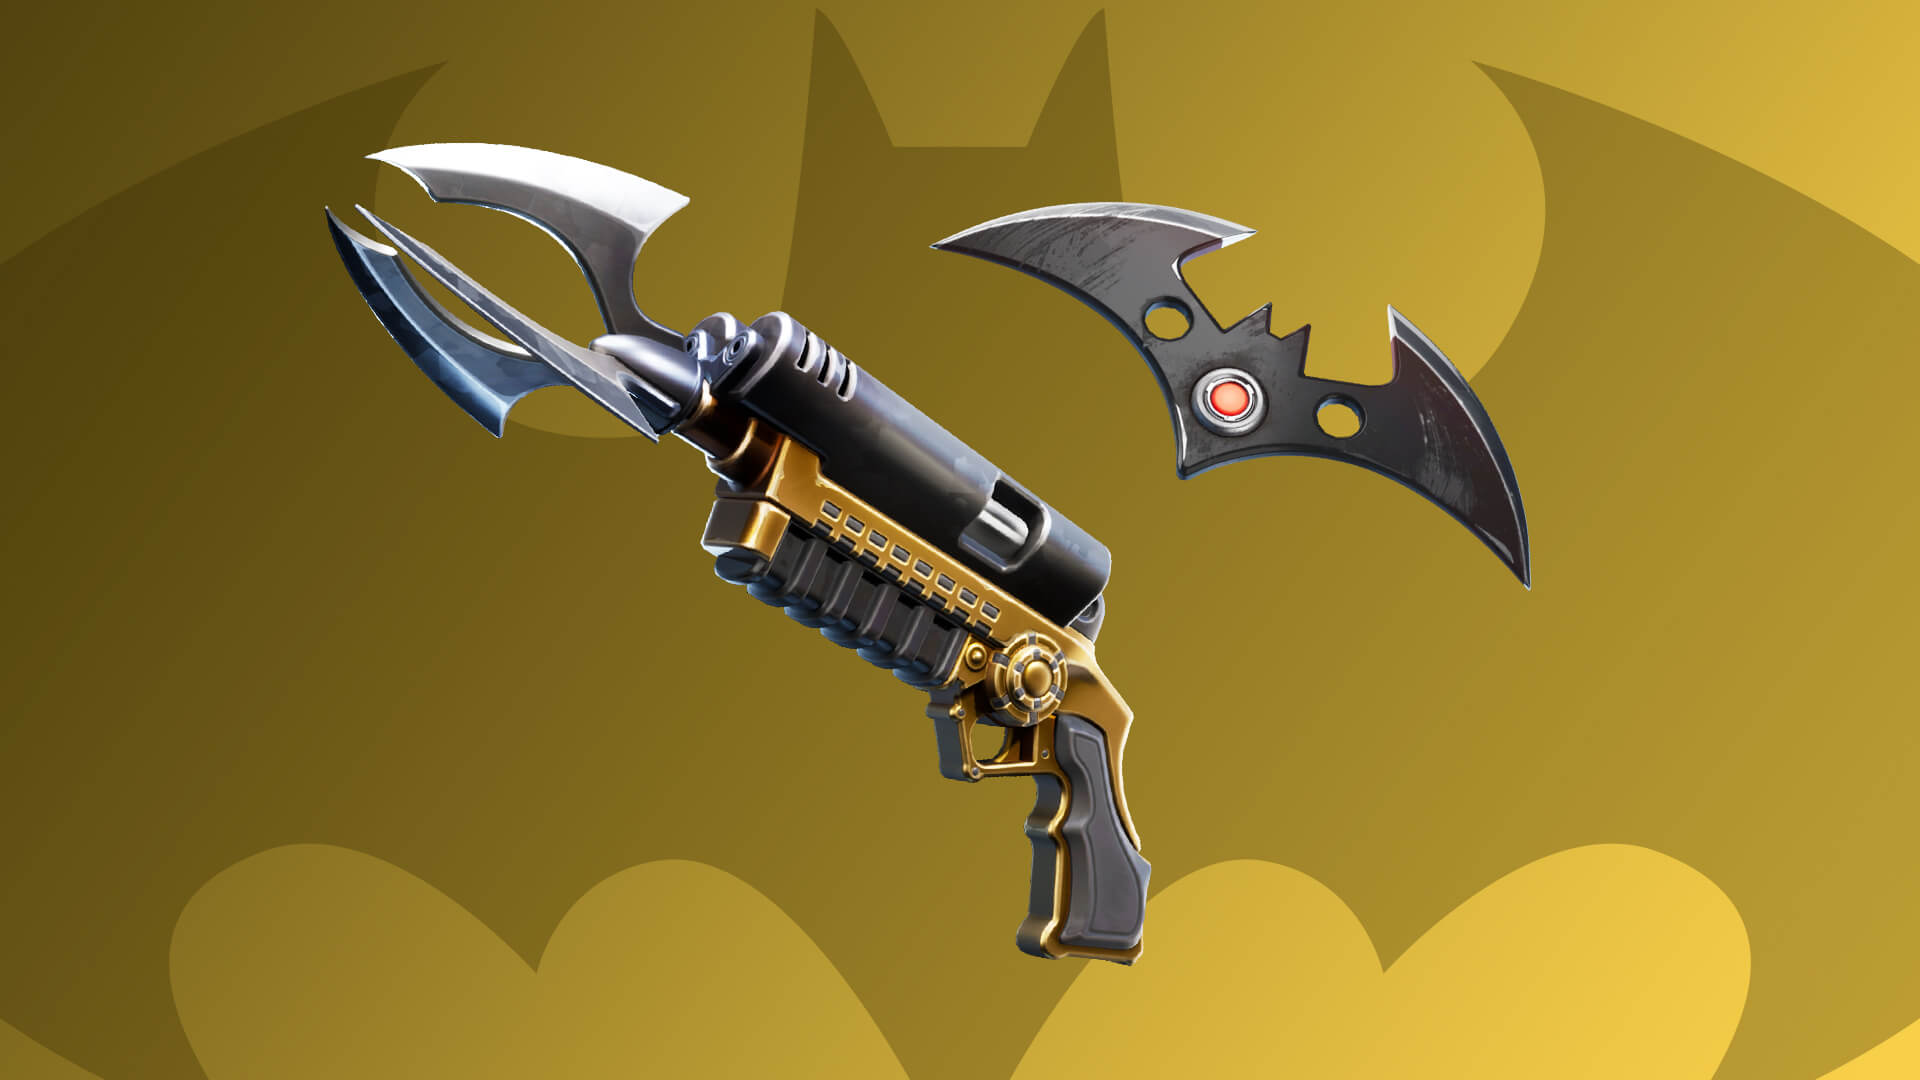 Fortnite Batman Grapple Gun and Batarang